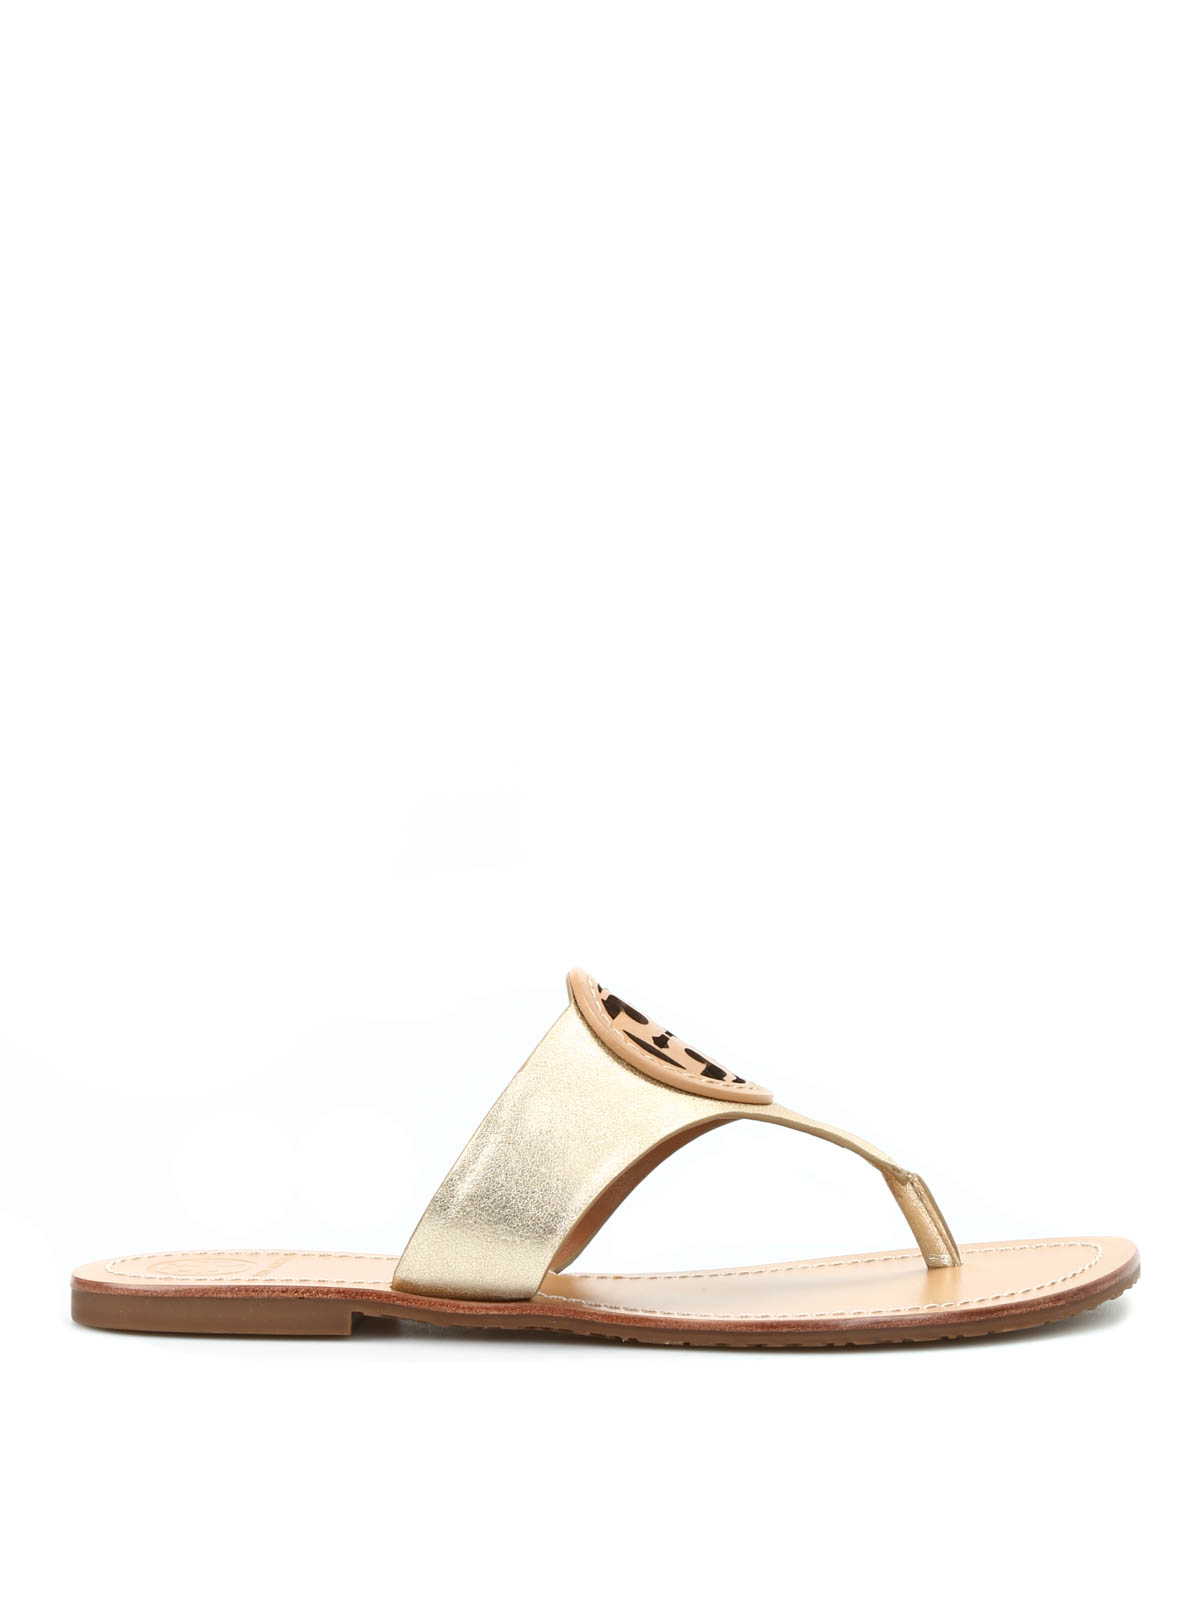 7067e4107 Tory Burch - Louisa leather thong sandals - flip flops - 22158537 058